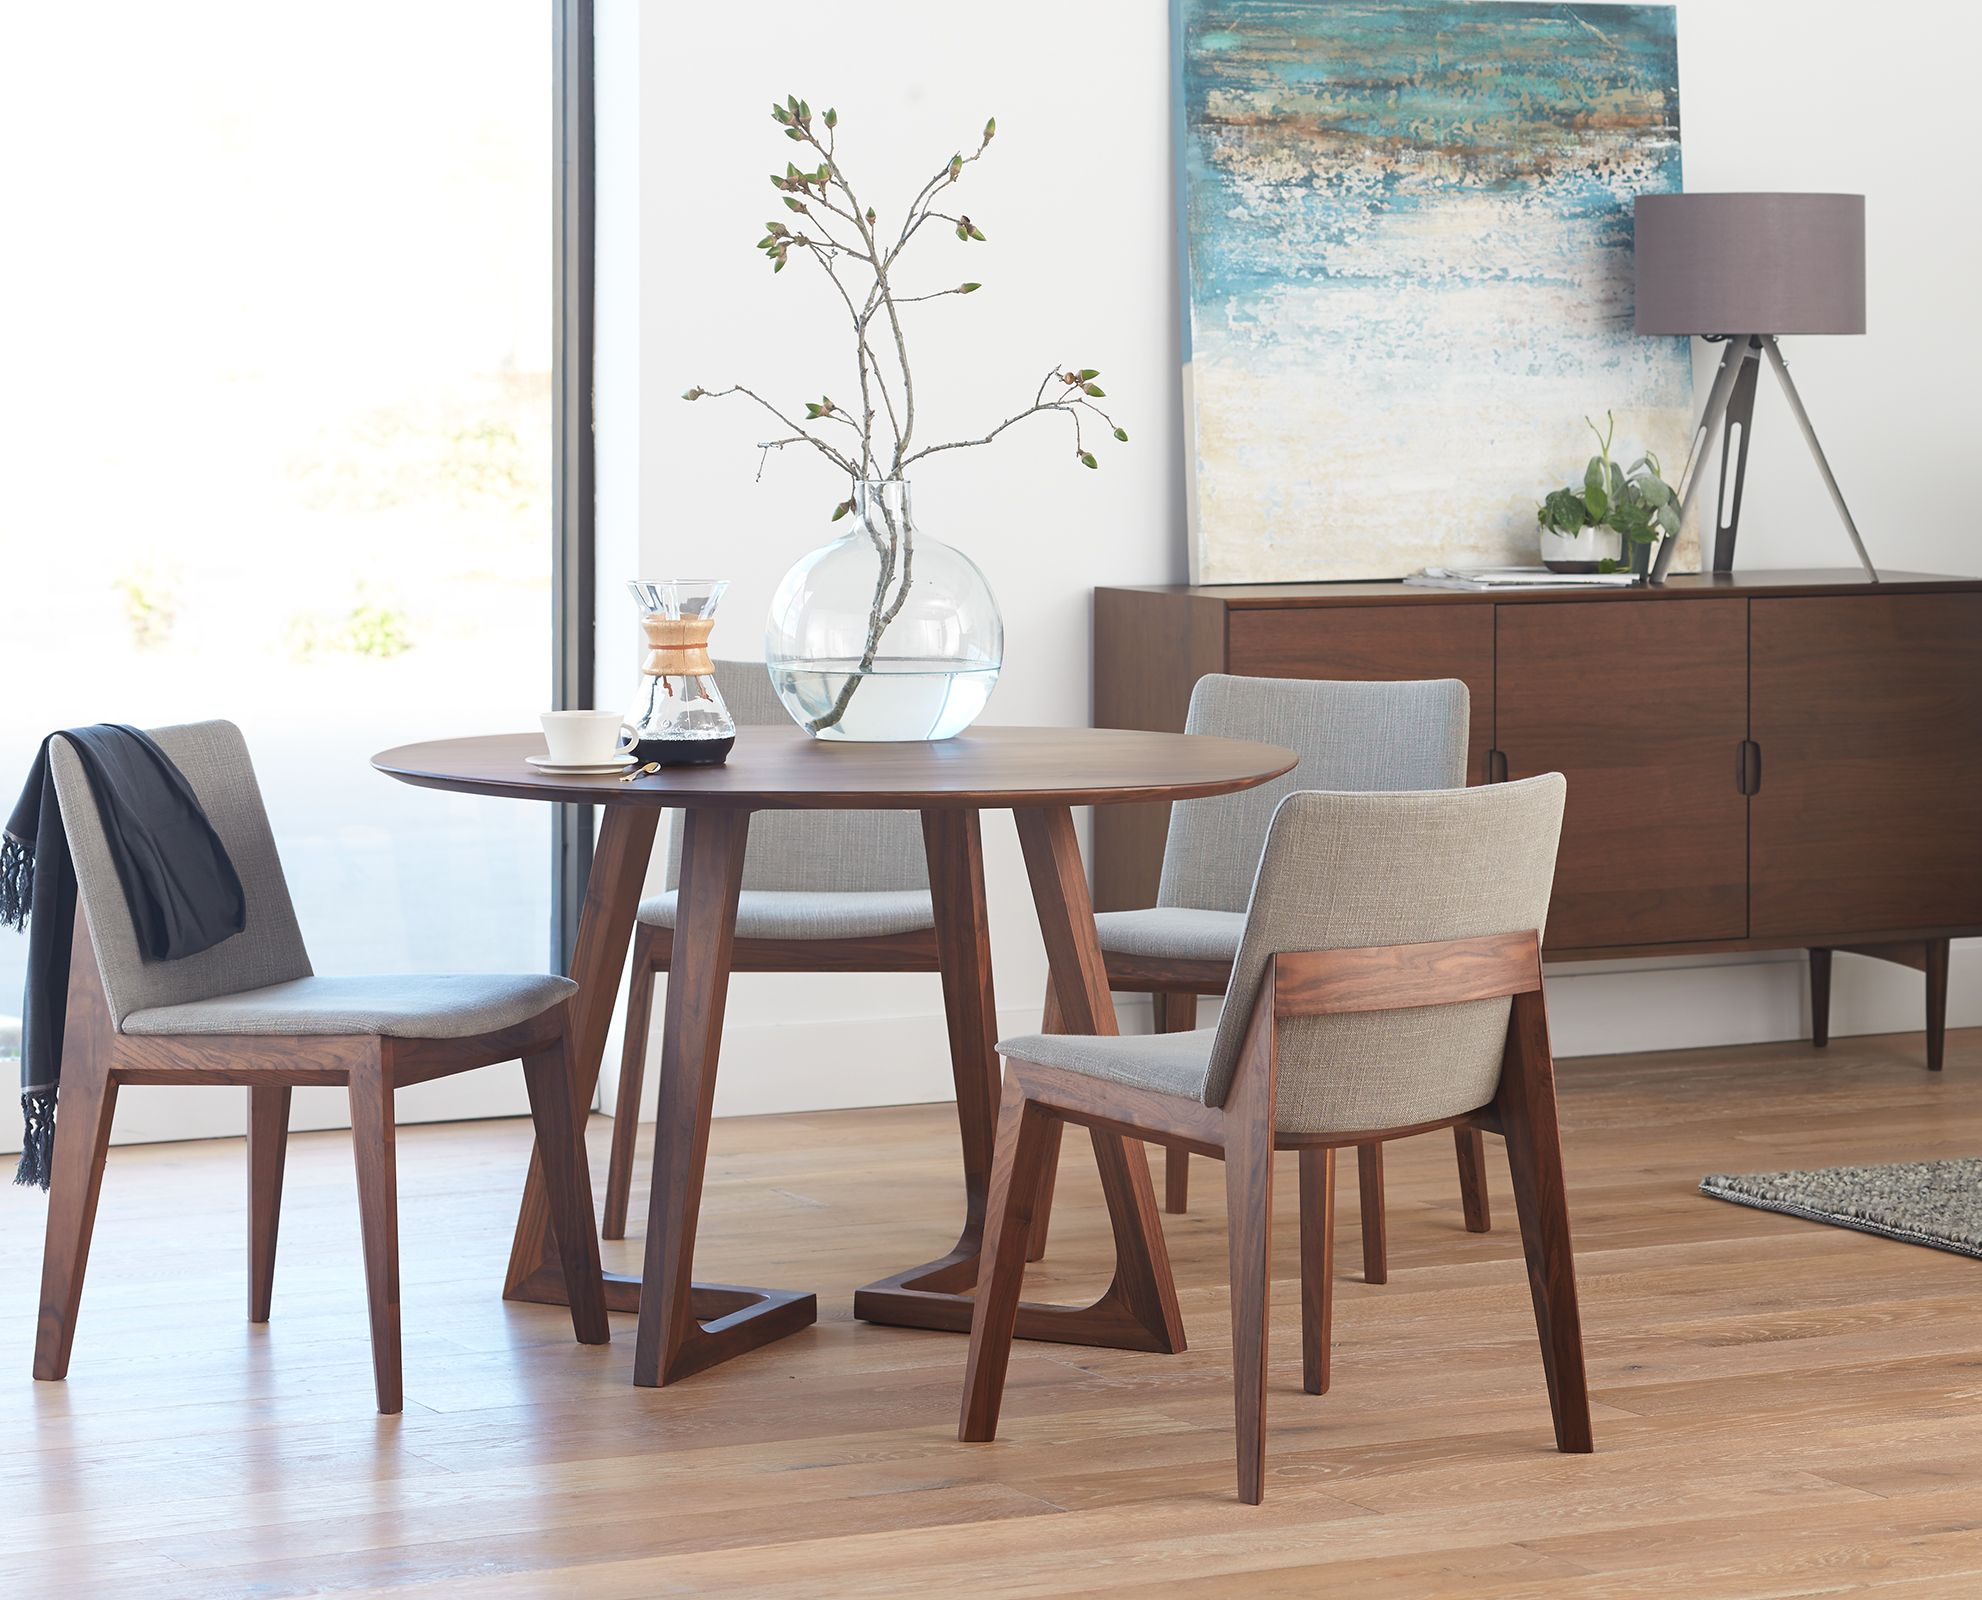 dining room table sofa sofas loveseat sets round and chairs from dania condo pinterest